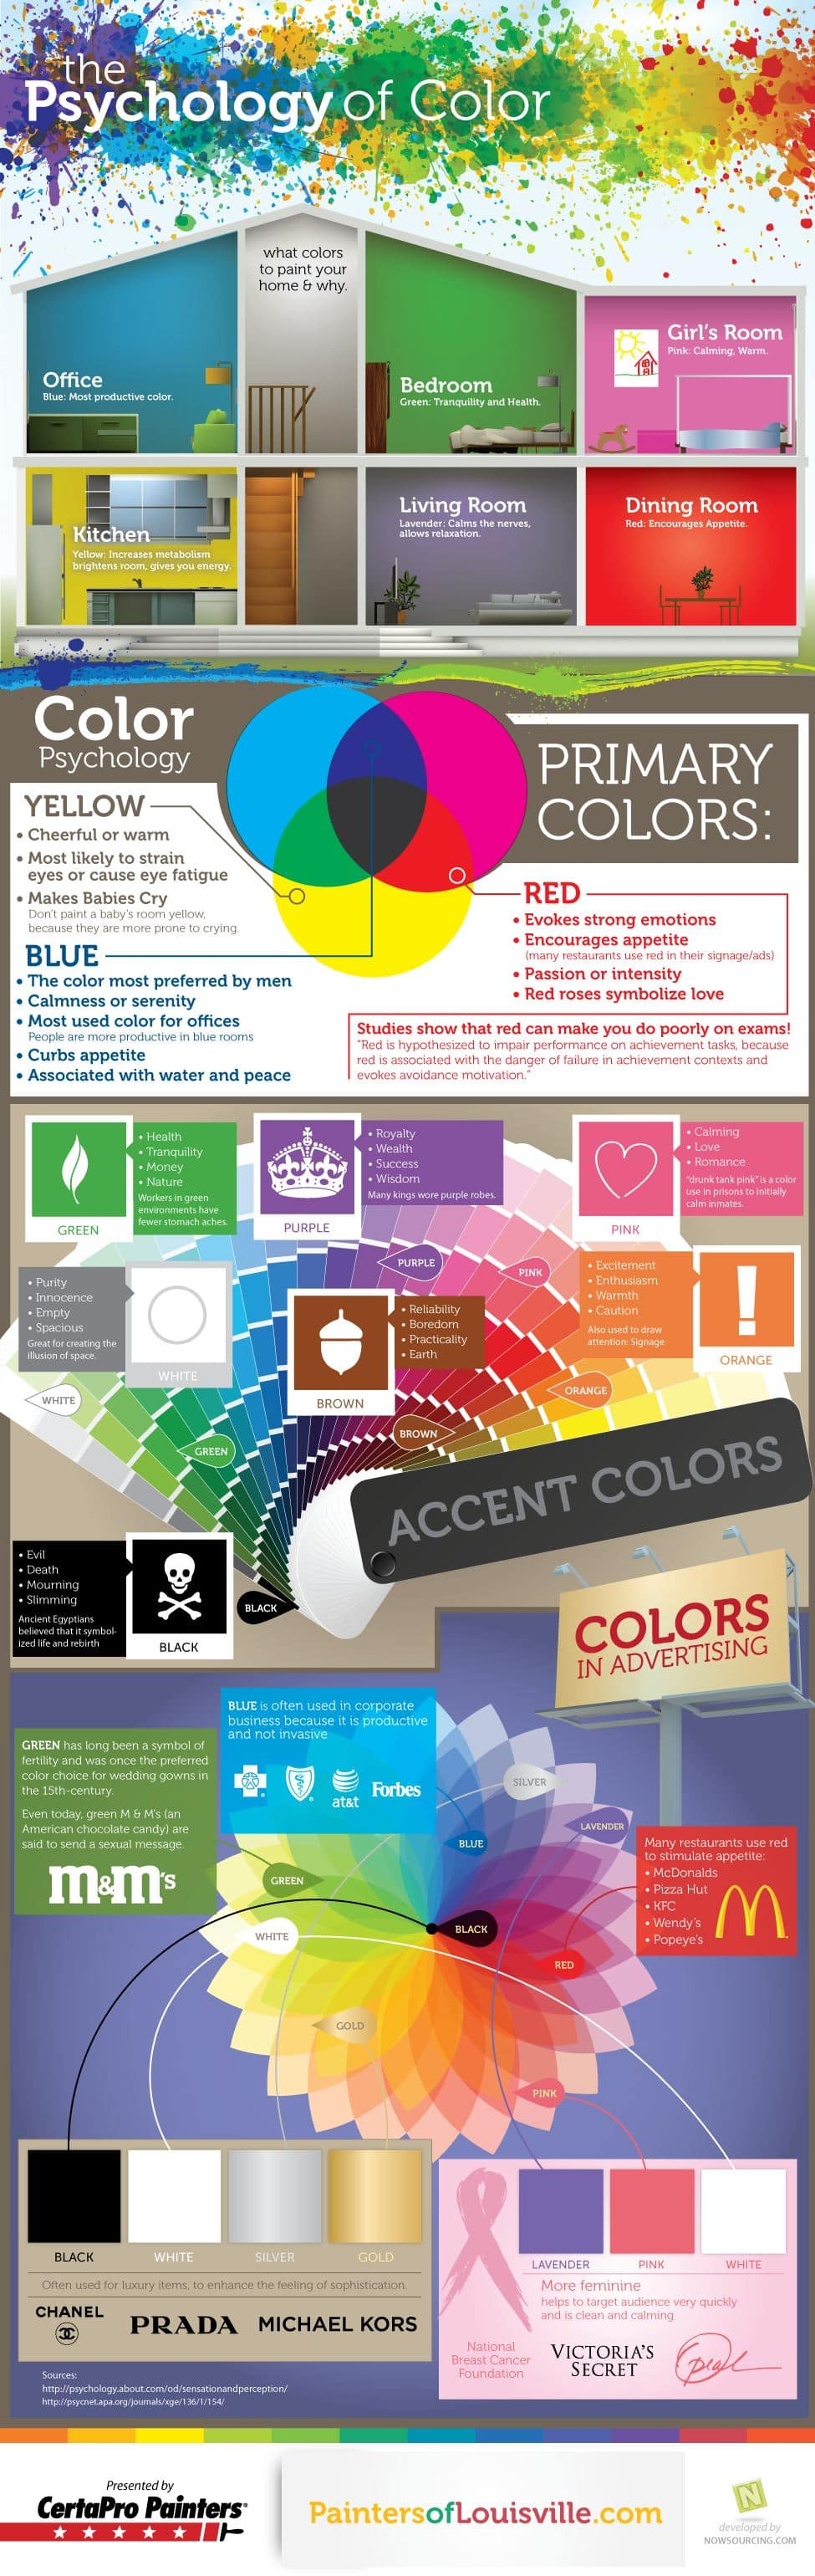 The Psychology of Color (Infographic)